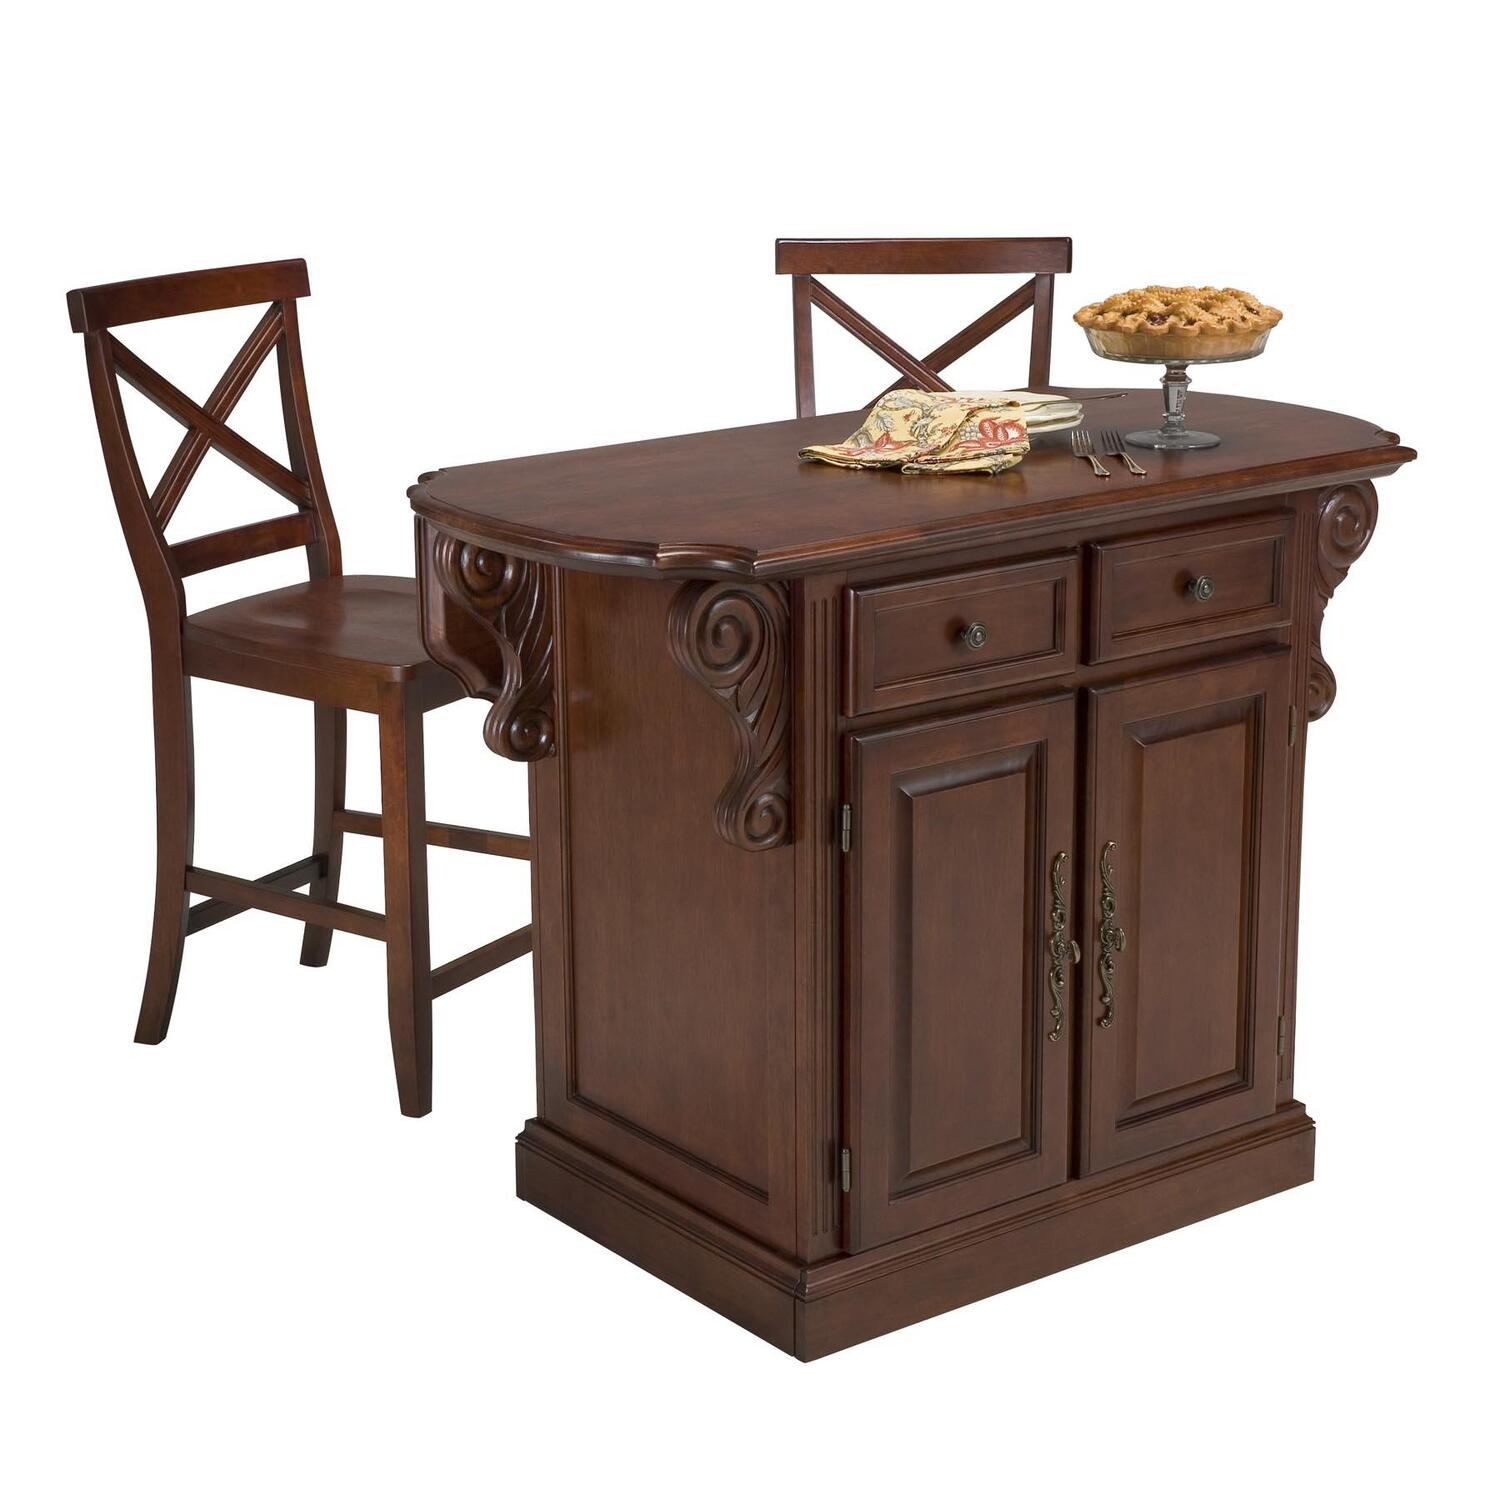 Home styles traditions kitchen island and two bar stools - Kitchen island with stools ...